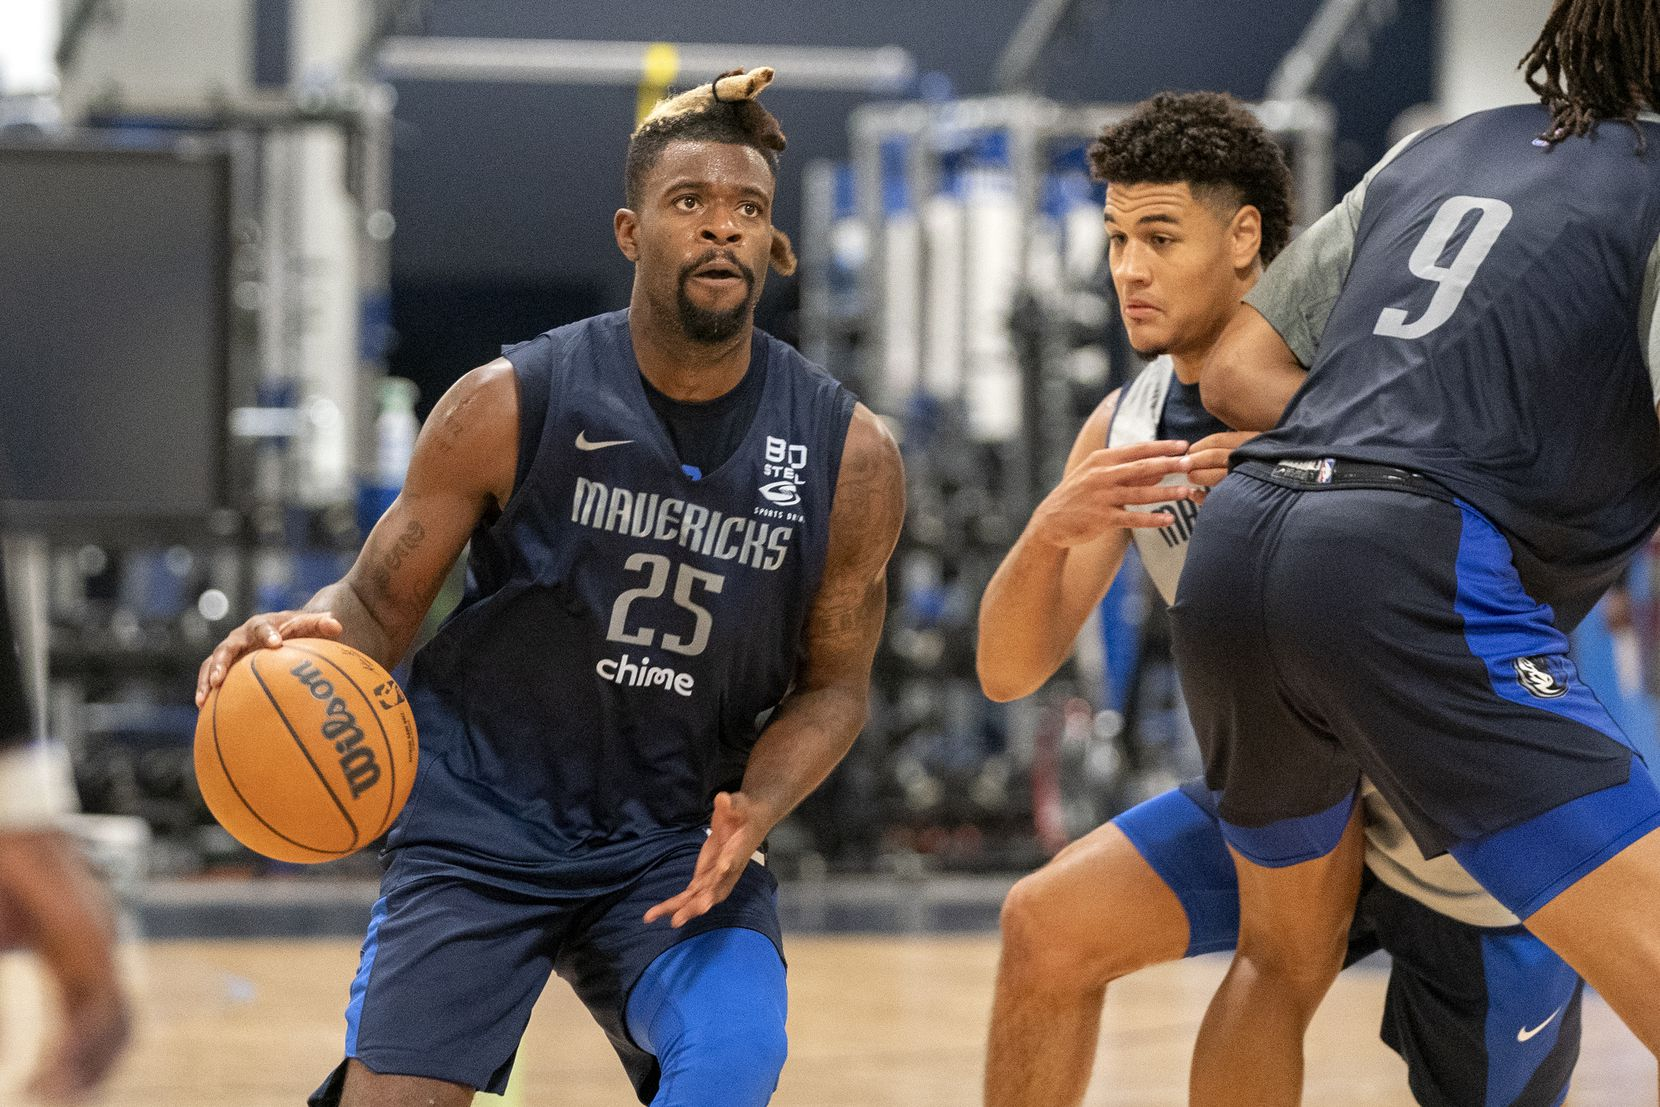 Dallas Mavericks guard Reggie Bullock (25) drives the lane as guard Josh Green tries to slide through the pick of center Moses Brown (9) in a scrimmage during the first practice of training camp Tuesday, September 28, 2021 at the Dallas Mavericks Training Center in Dallas.